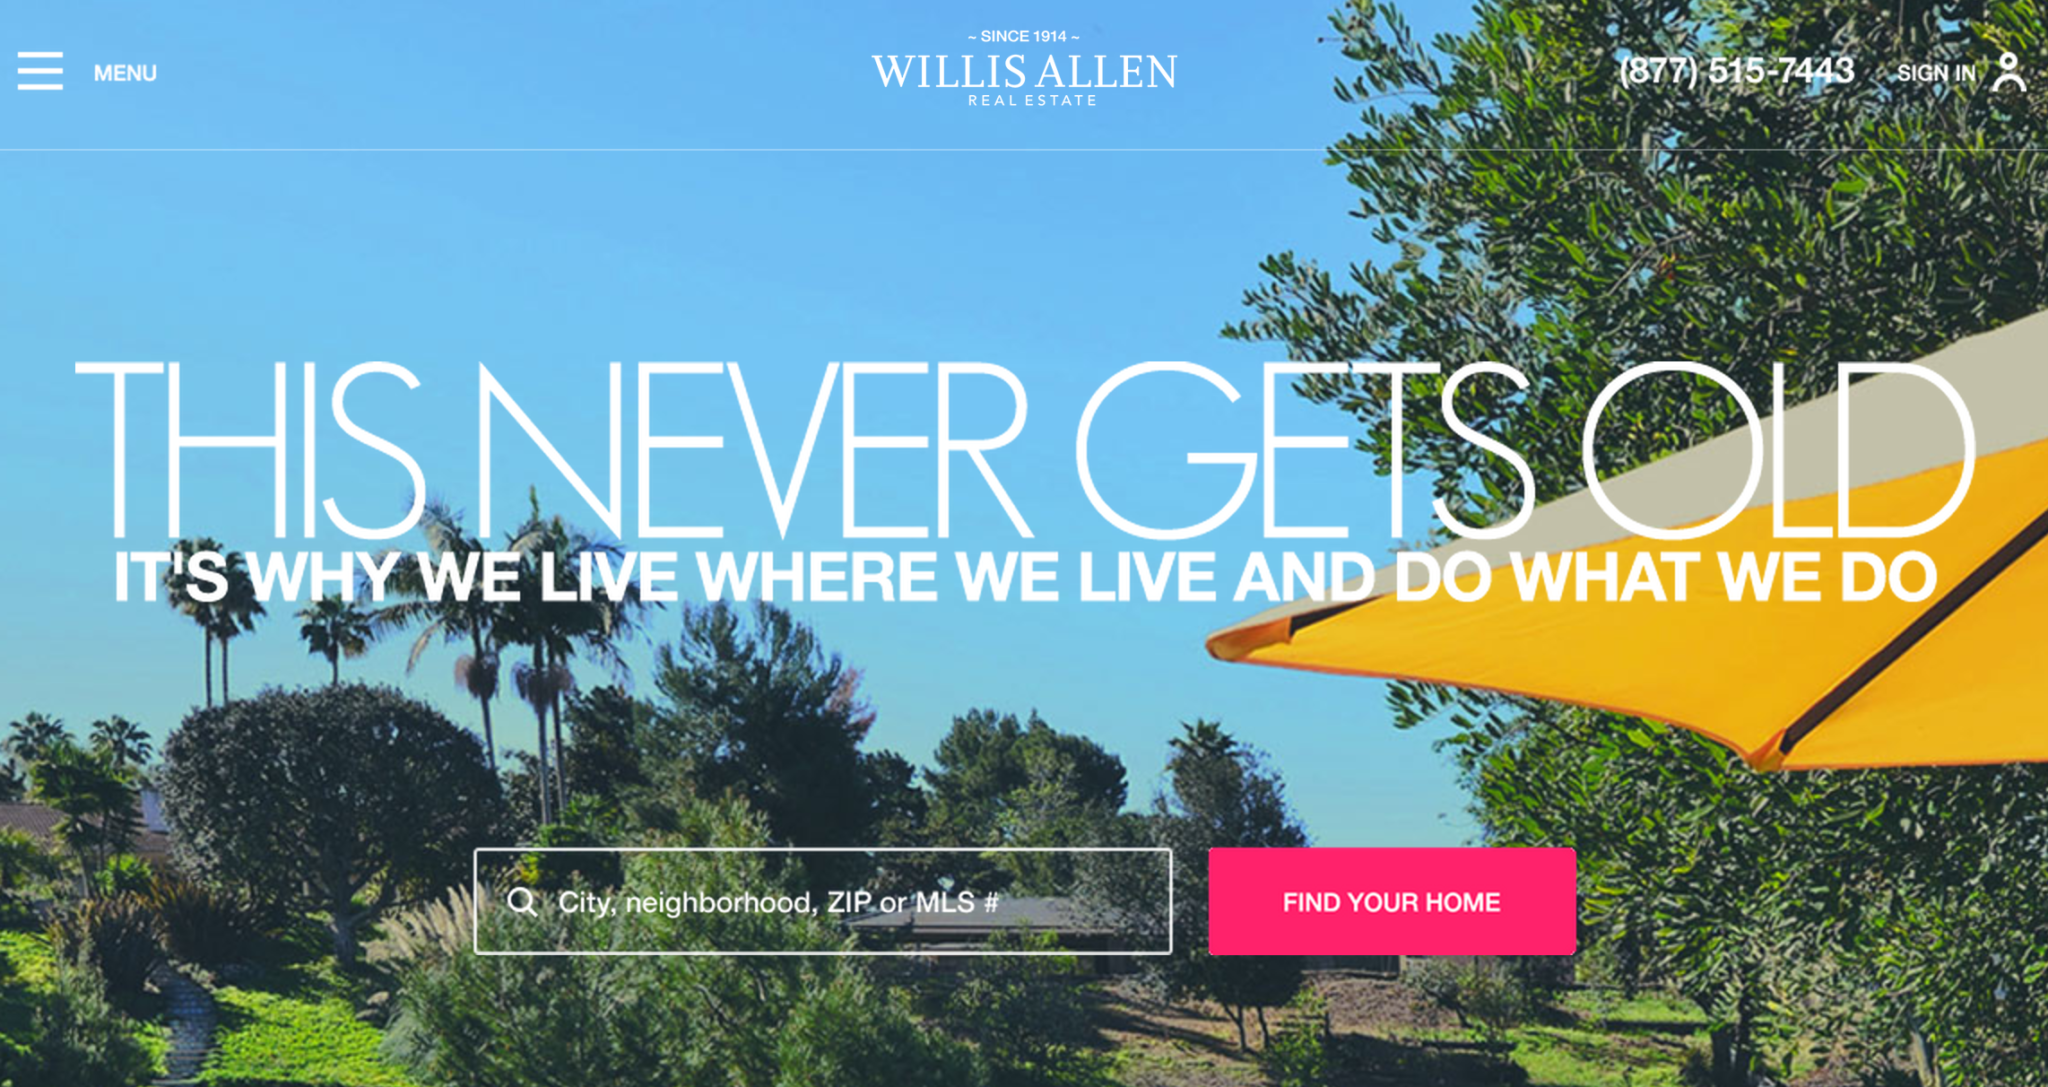 Anatomy of a real estate website revamp